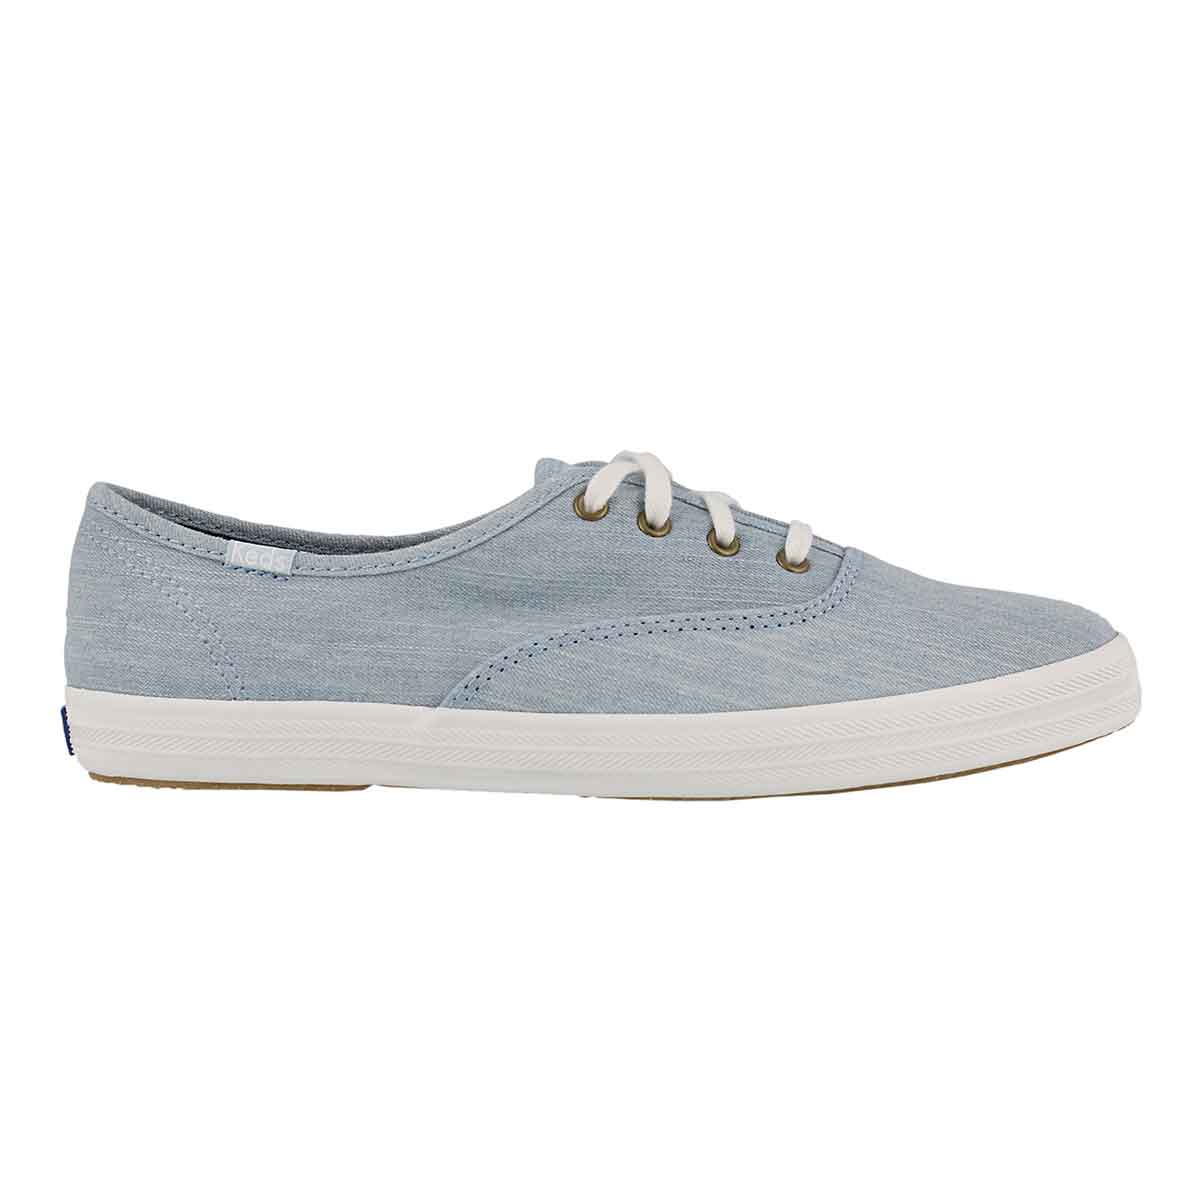 Lds Champion Seasonal lt blu CVO sneaker